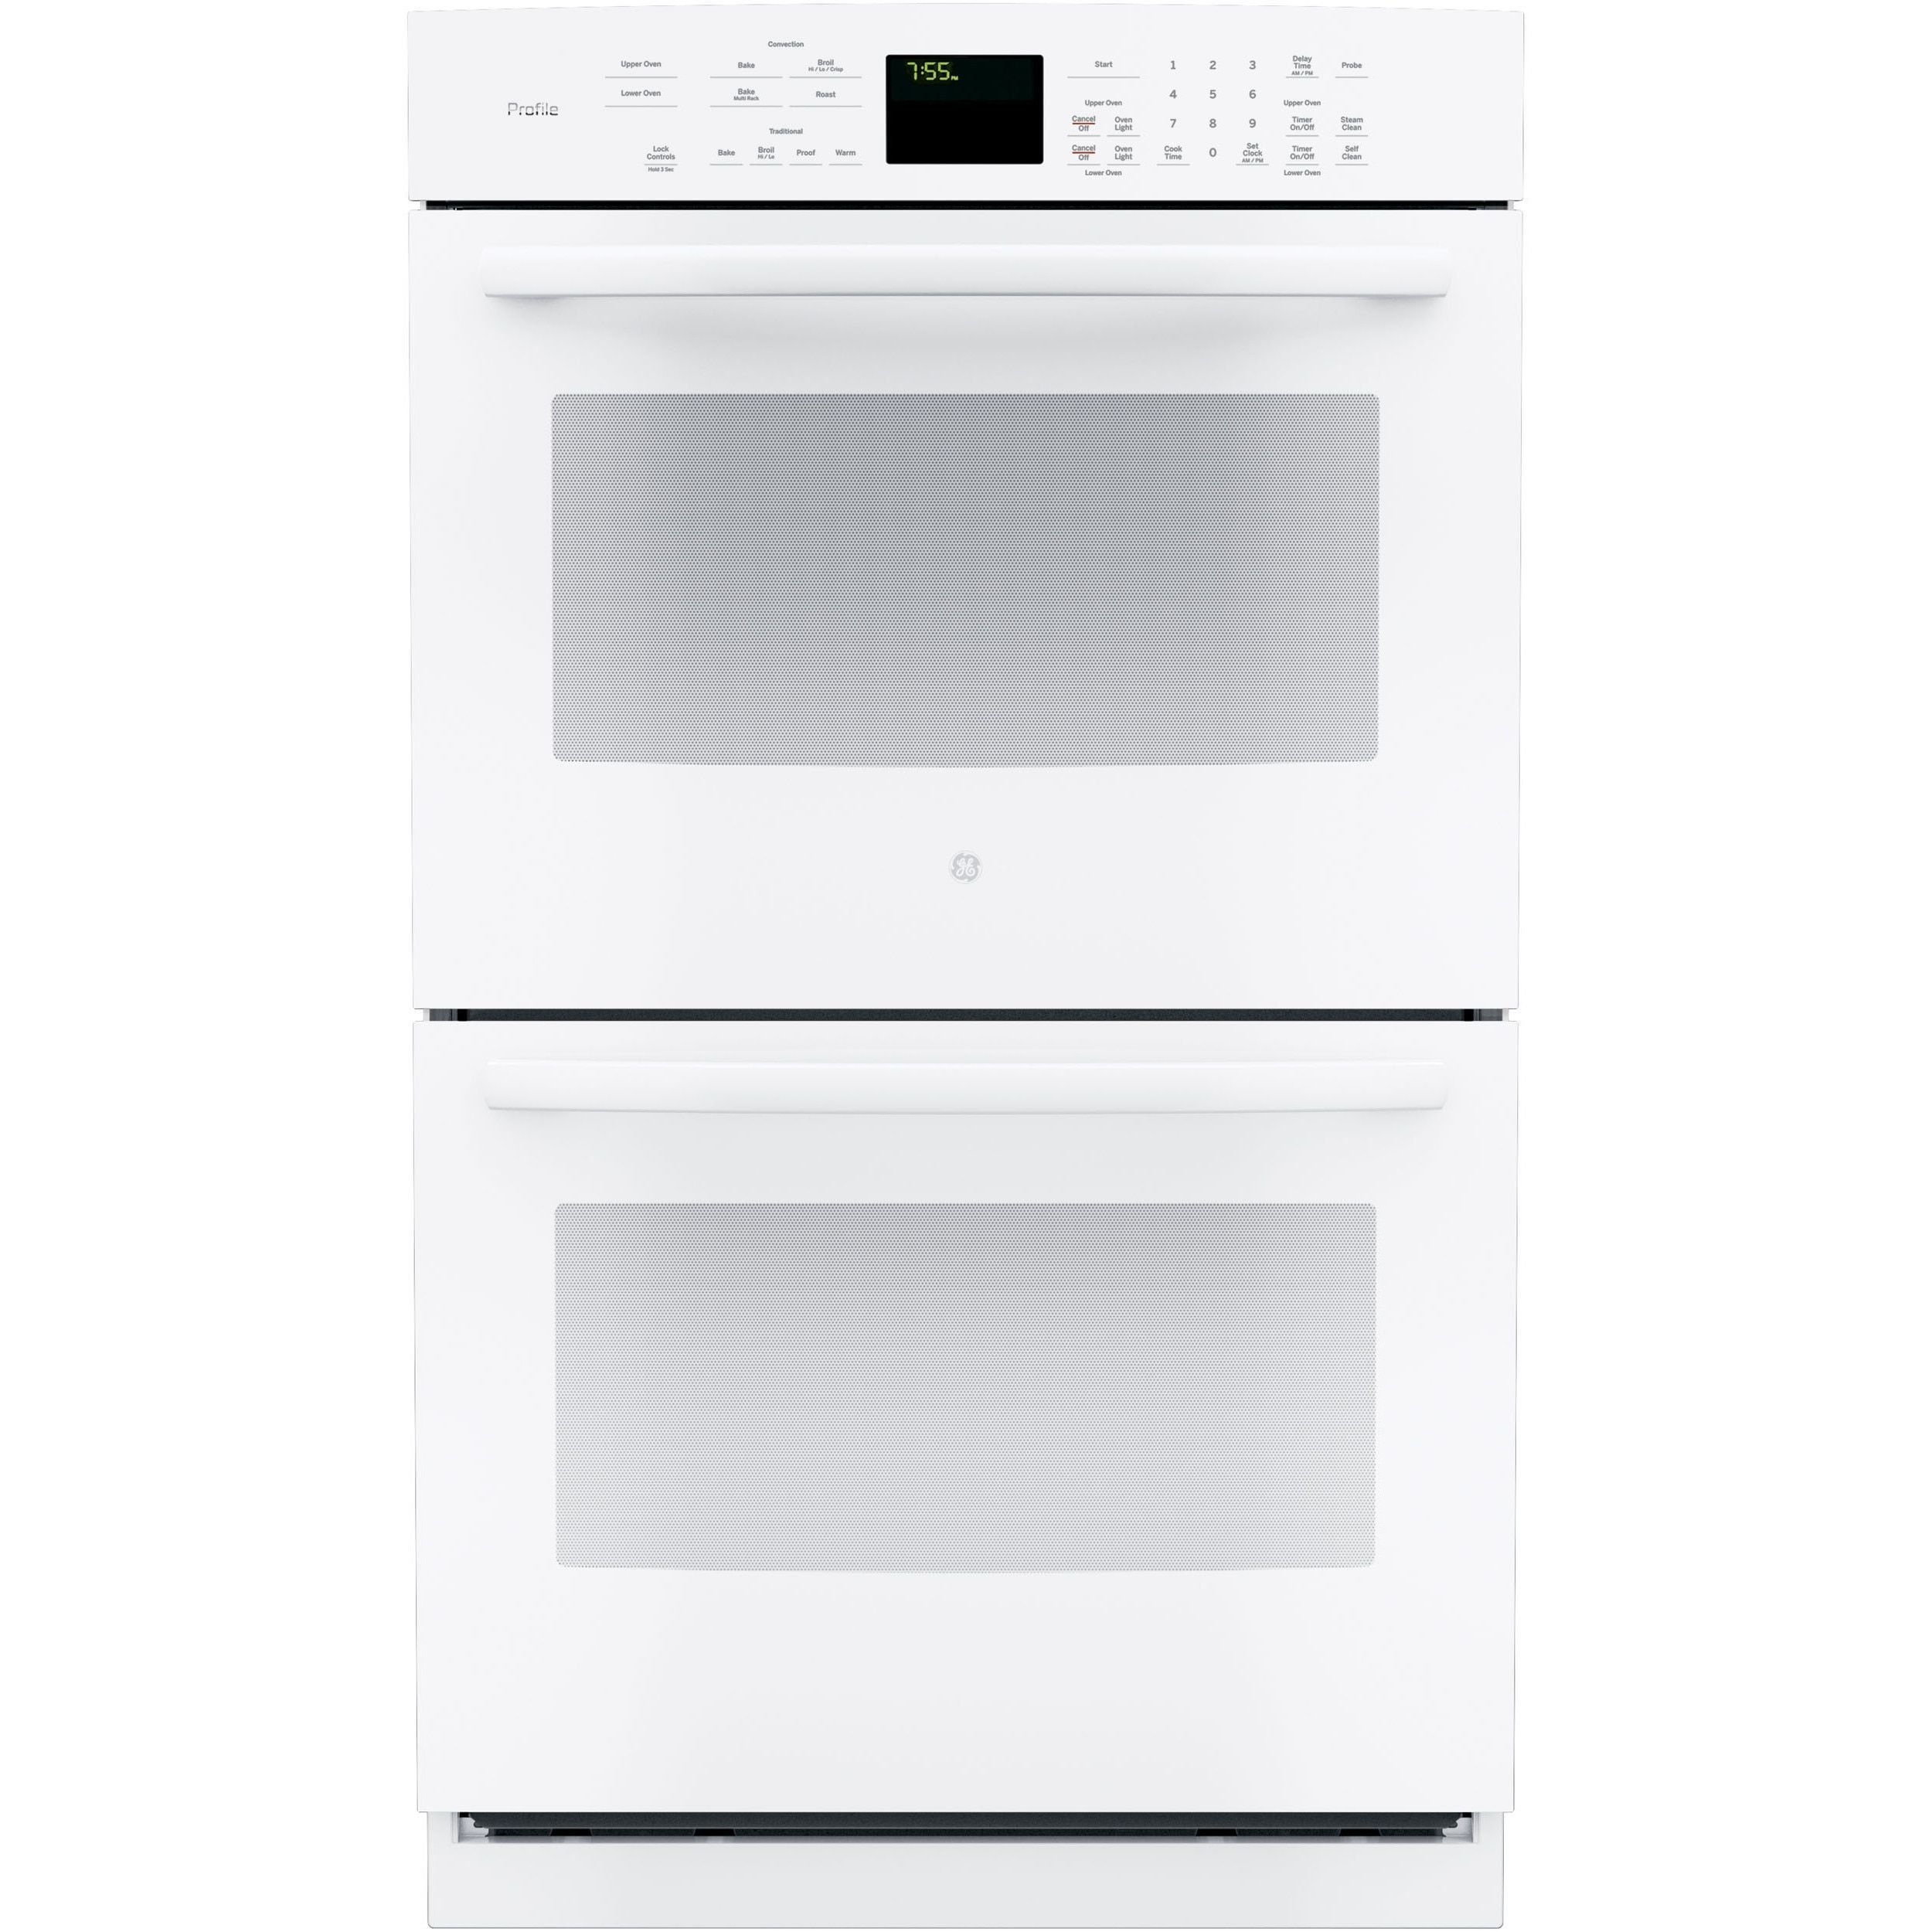 Ge Profile Series 30 Built In Double Wall Oven With Convection